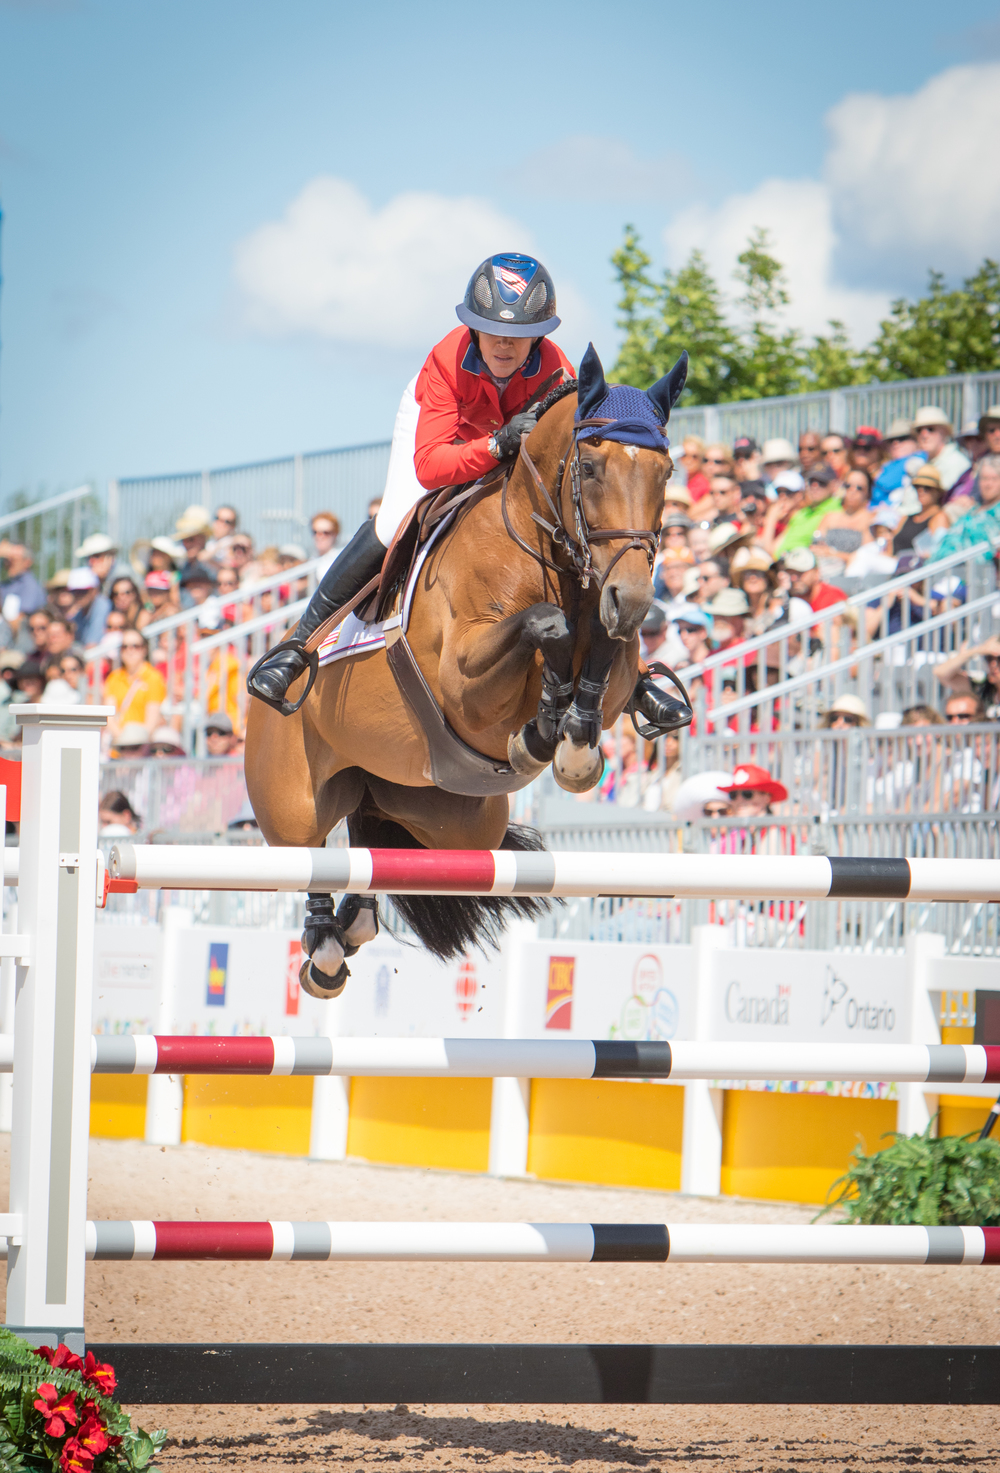 Top and above, Lauren and Ohlala compete at the Pan American Games, July 2015. Ph. ©StockImageServices.com